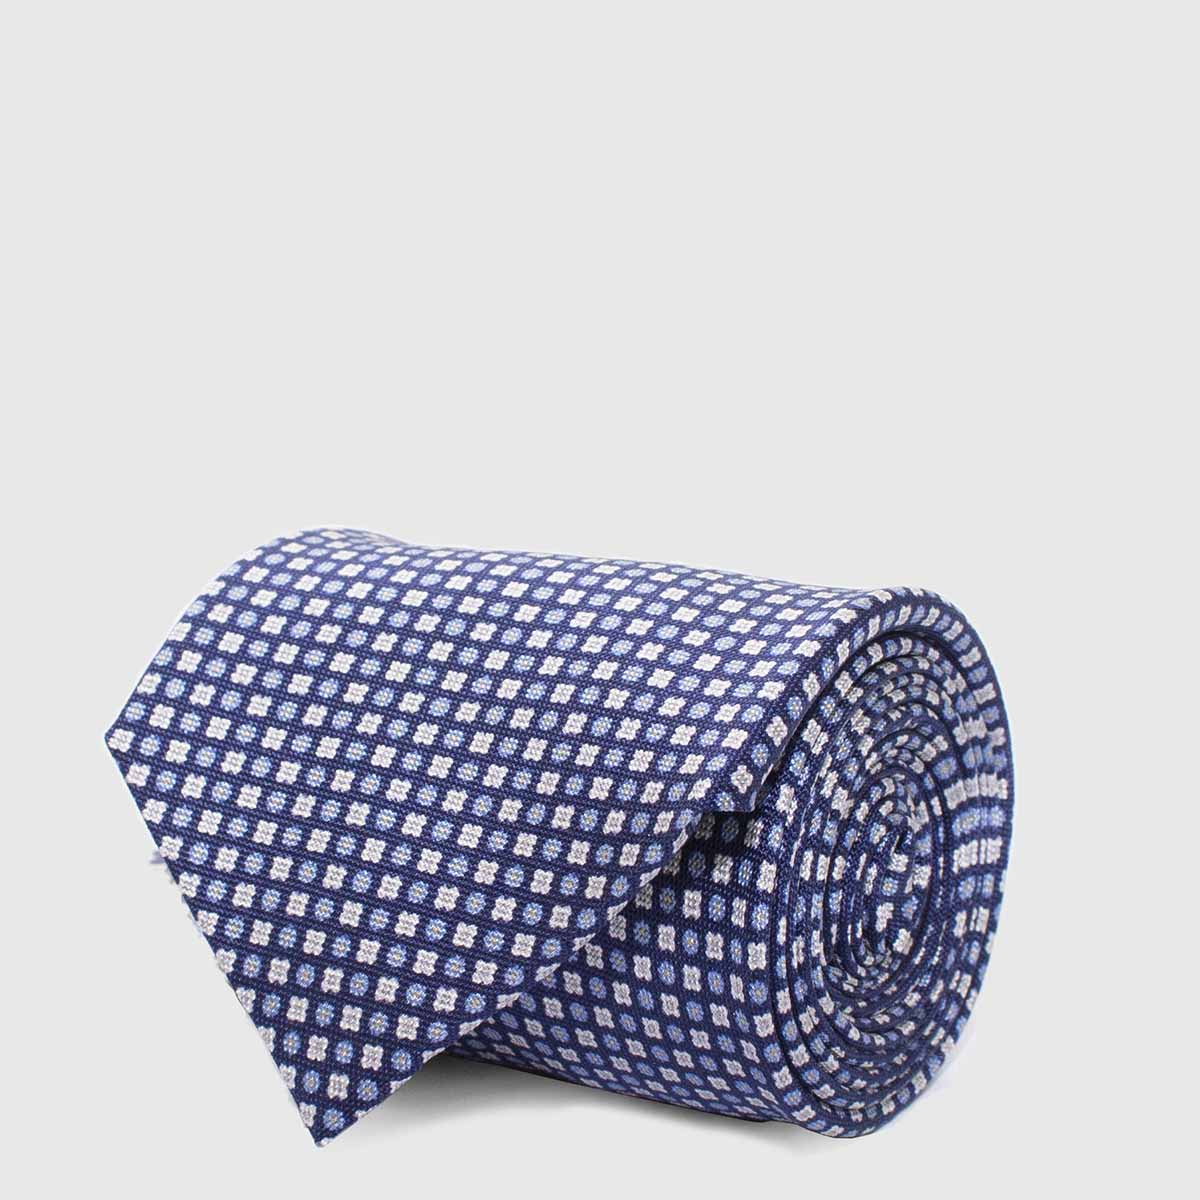 5 Fold blue Tie with light blue and white flowers